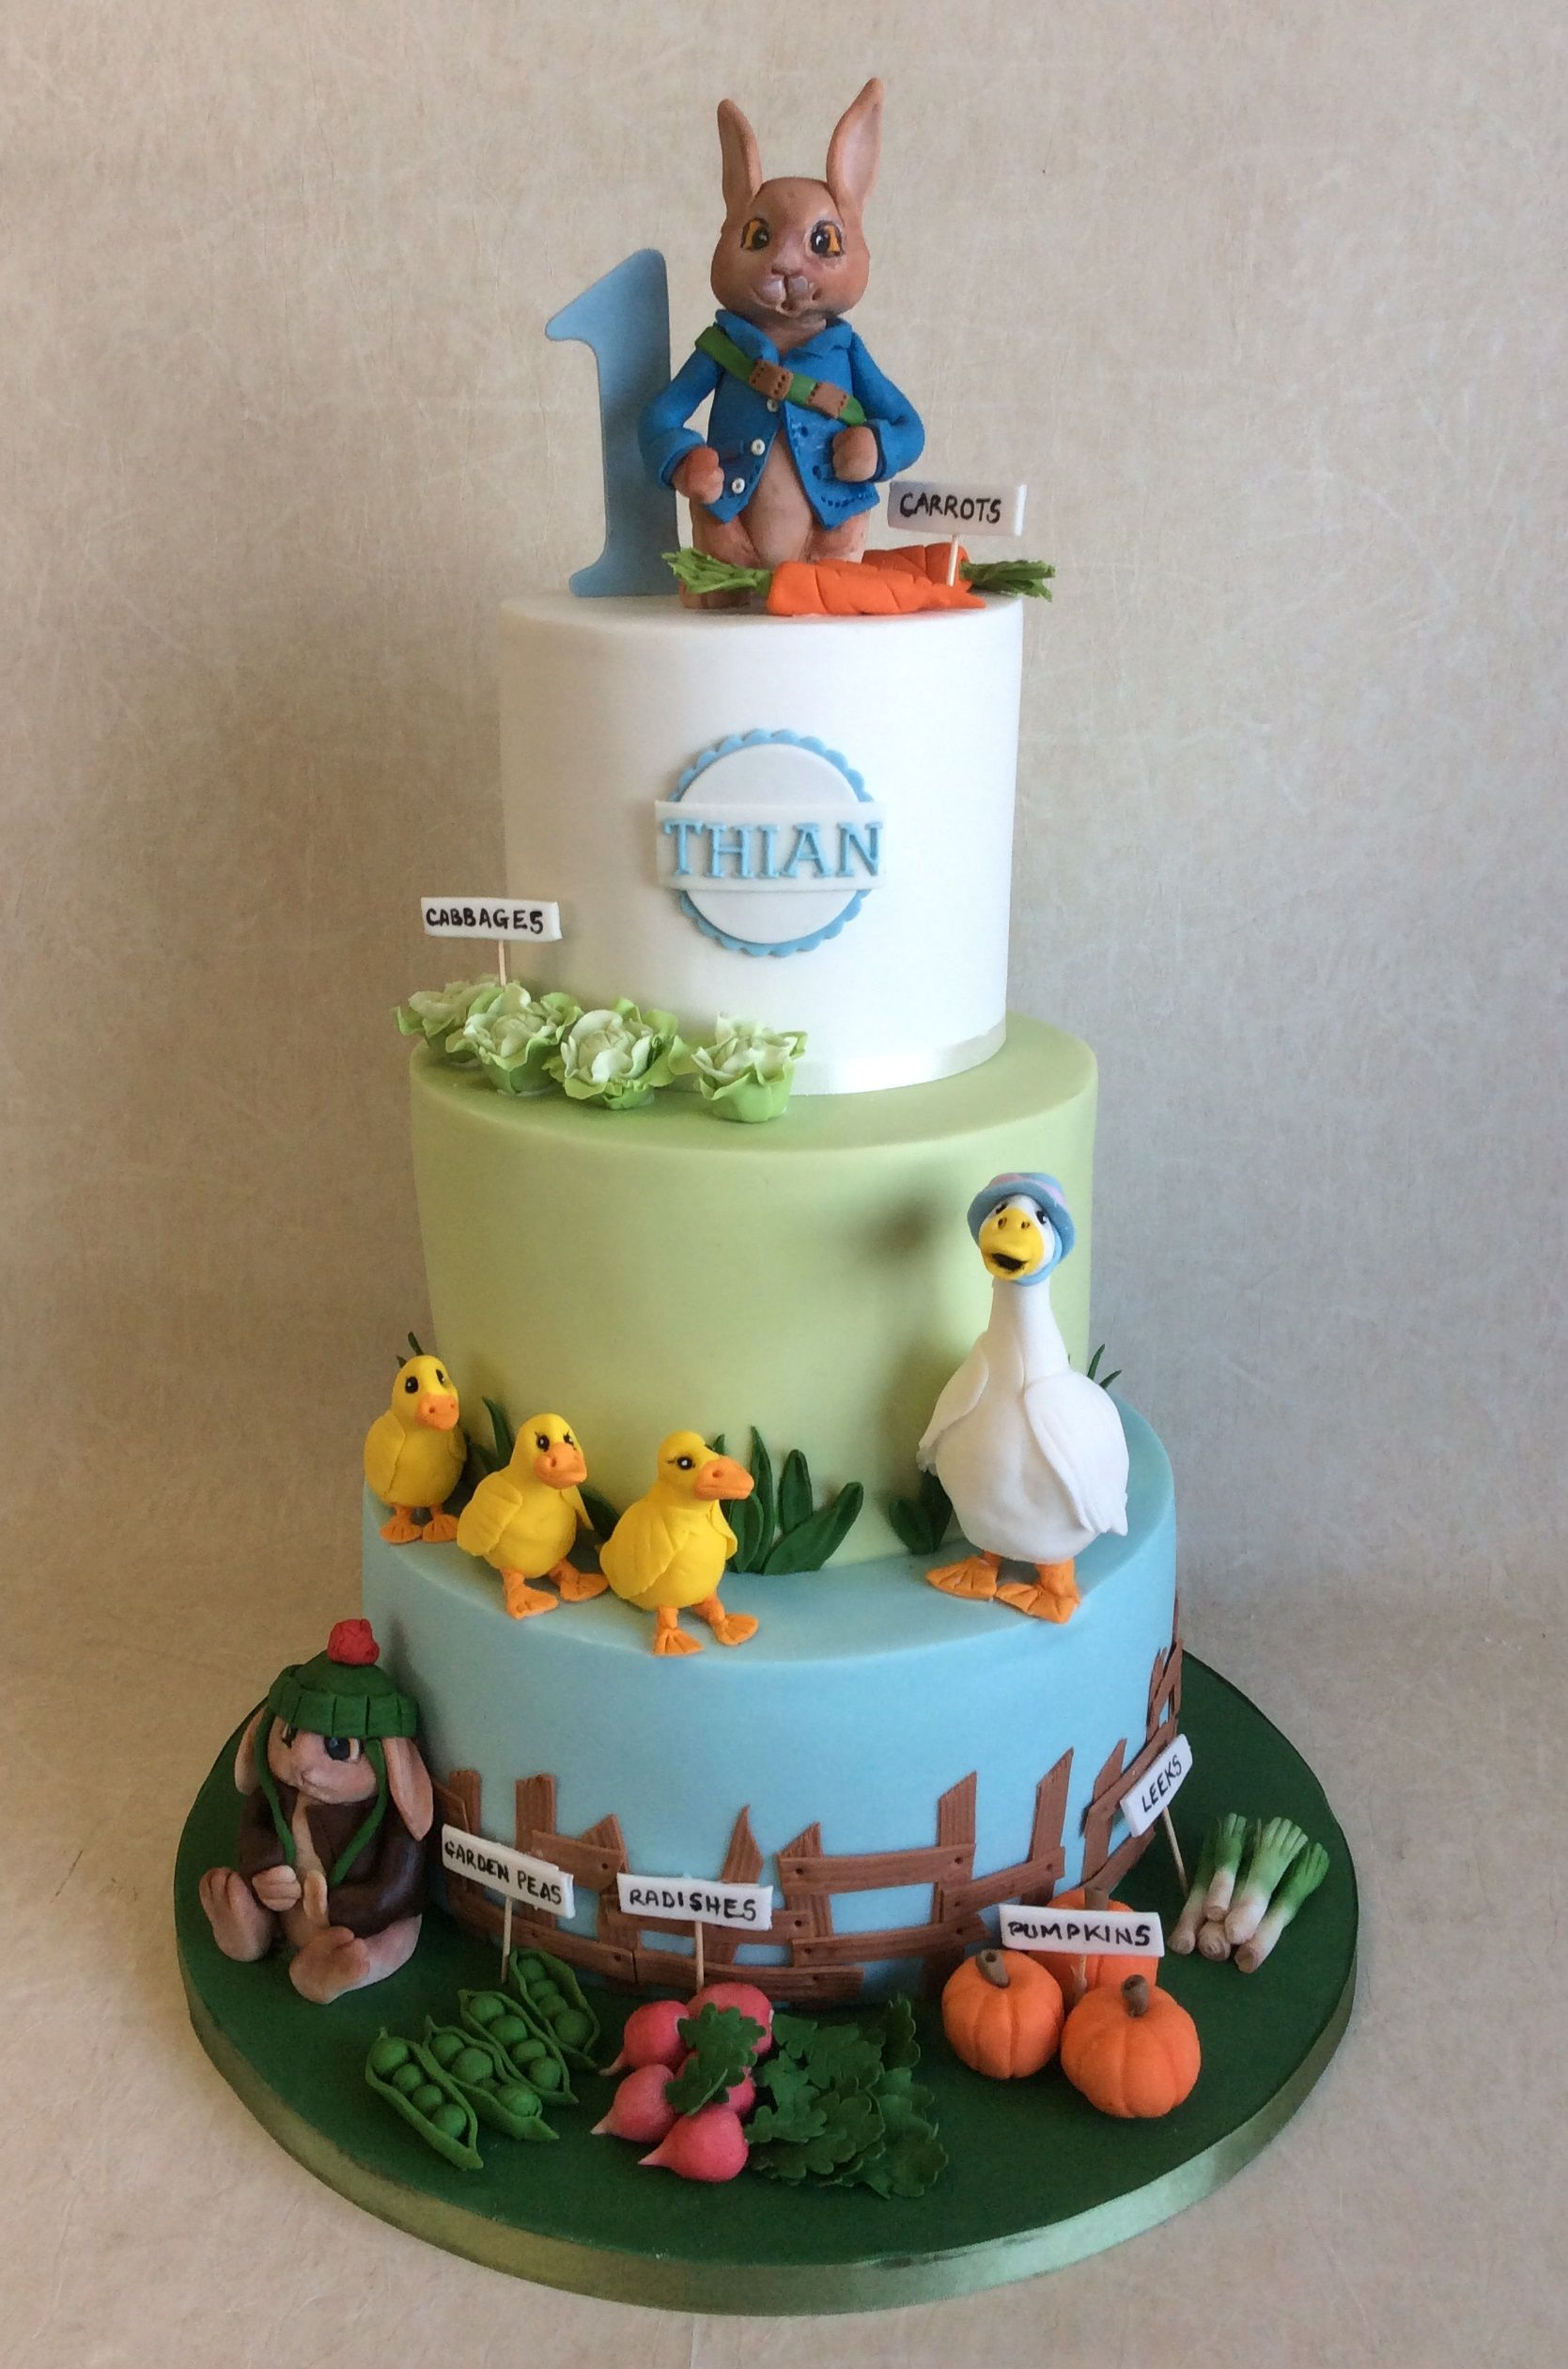 3 Tier Peter Rabbit Friends Themed 1st Birthday Cake Characters